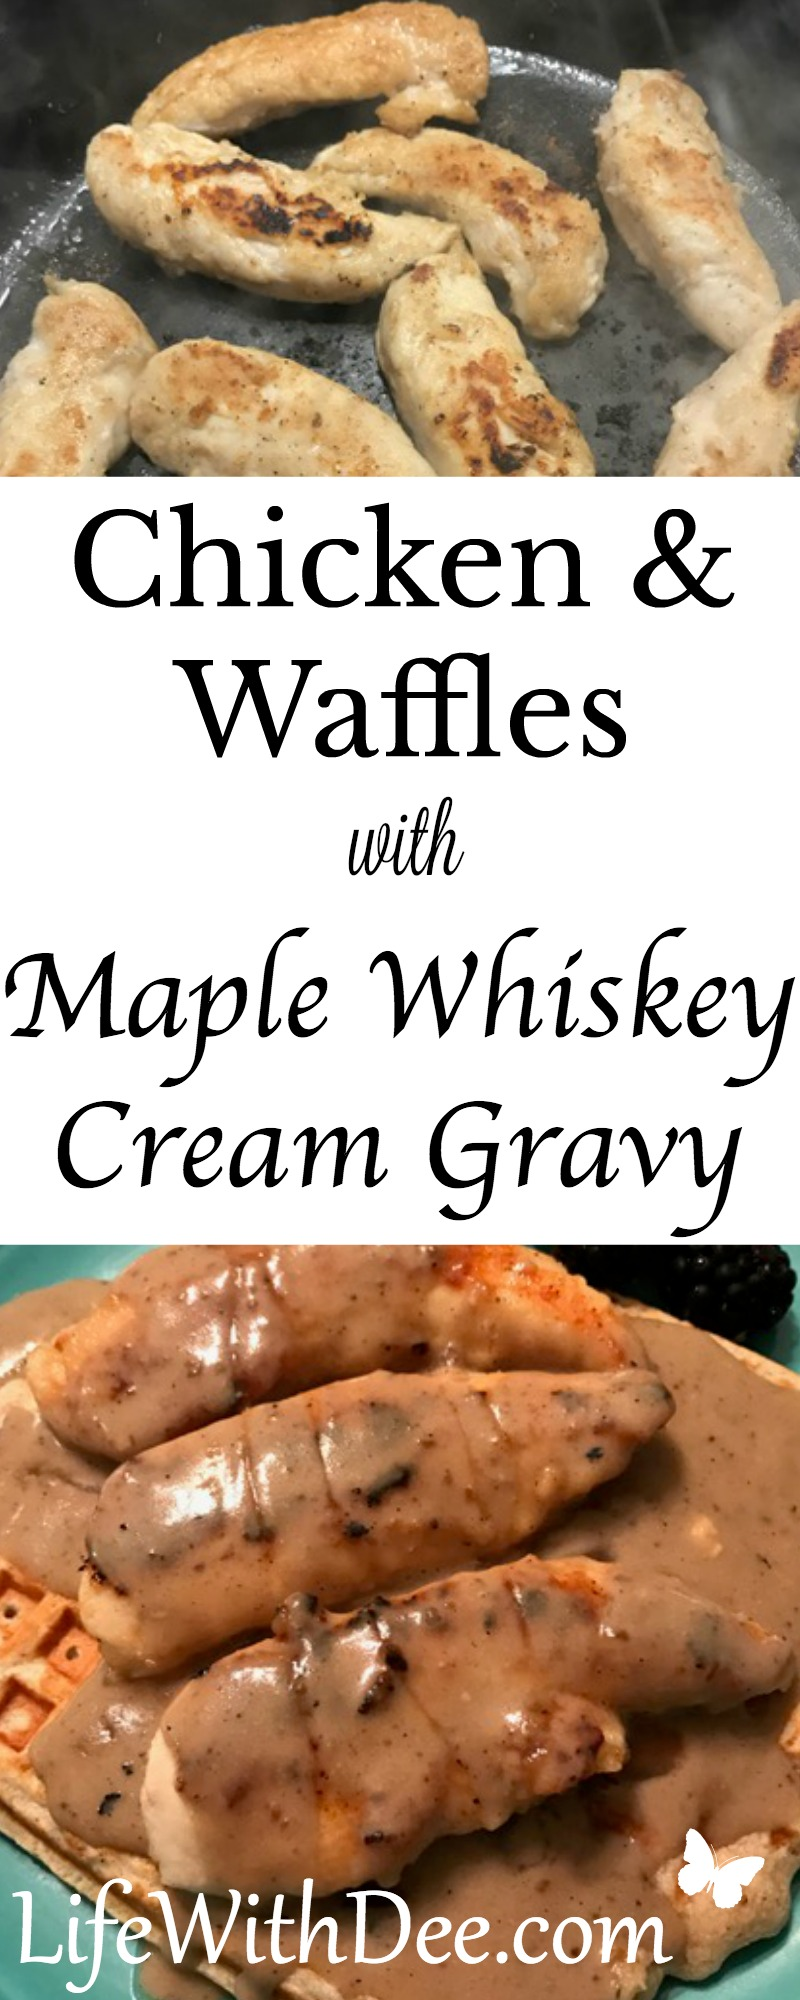 Chicken and Waffles with Maple Whiskey Cream Gravy